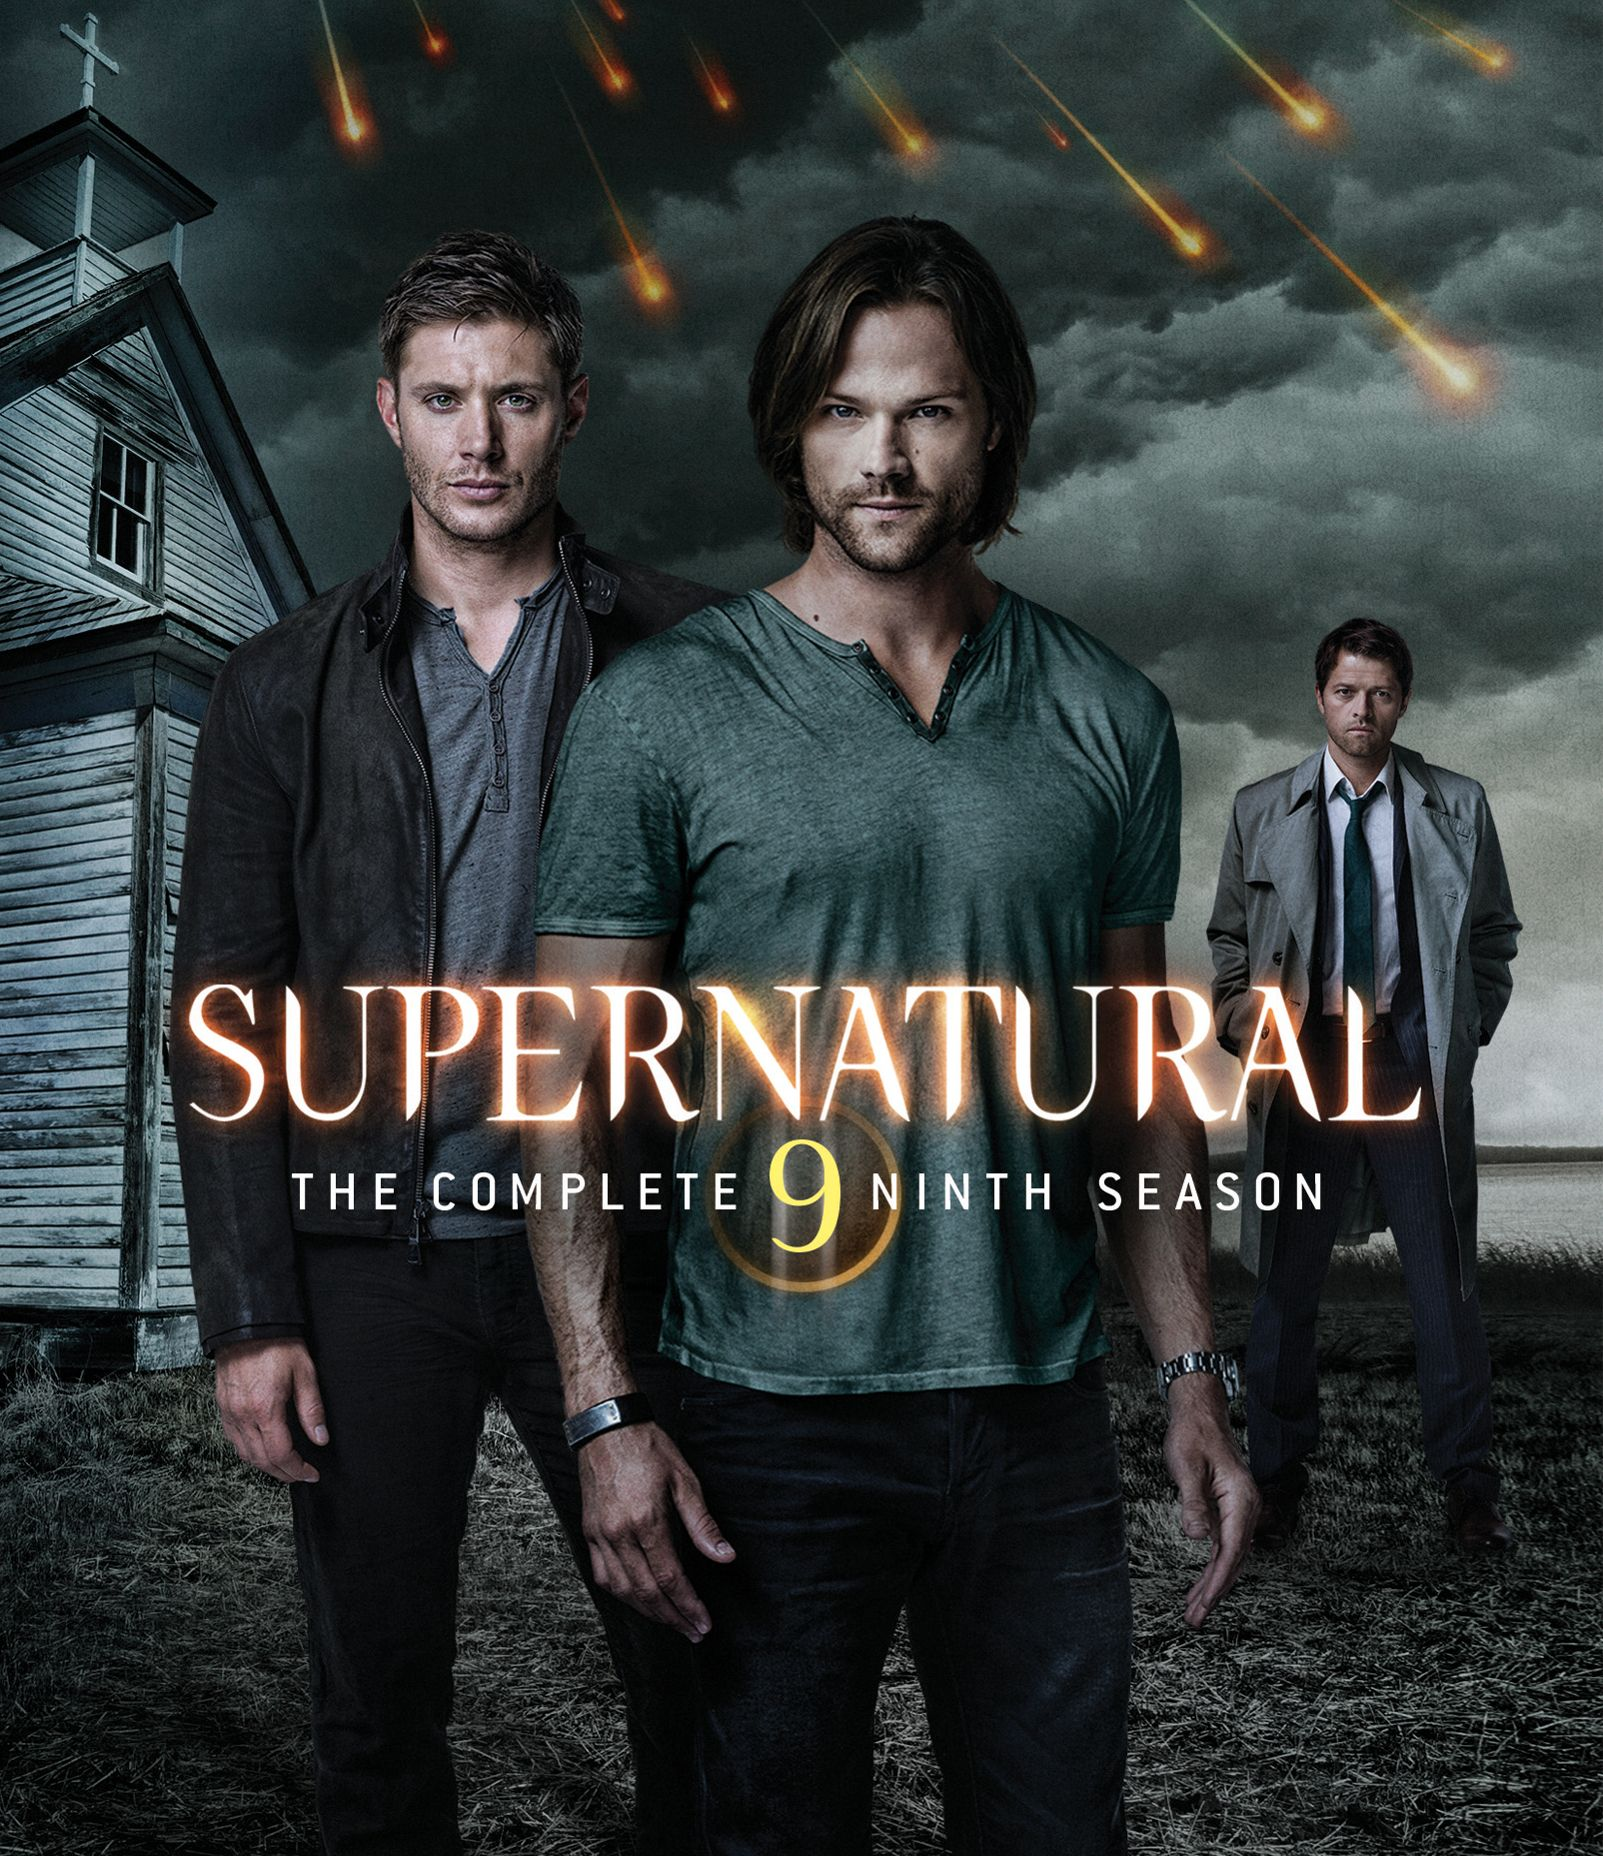 supernatural season 9 full episodes online free